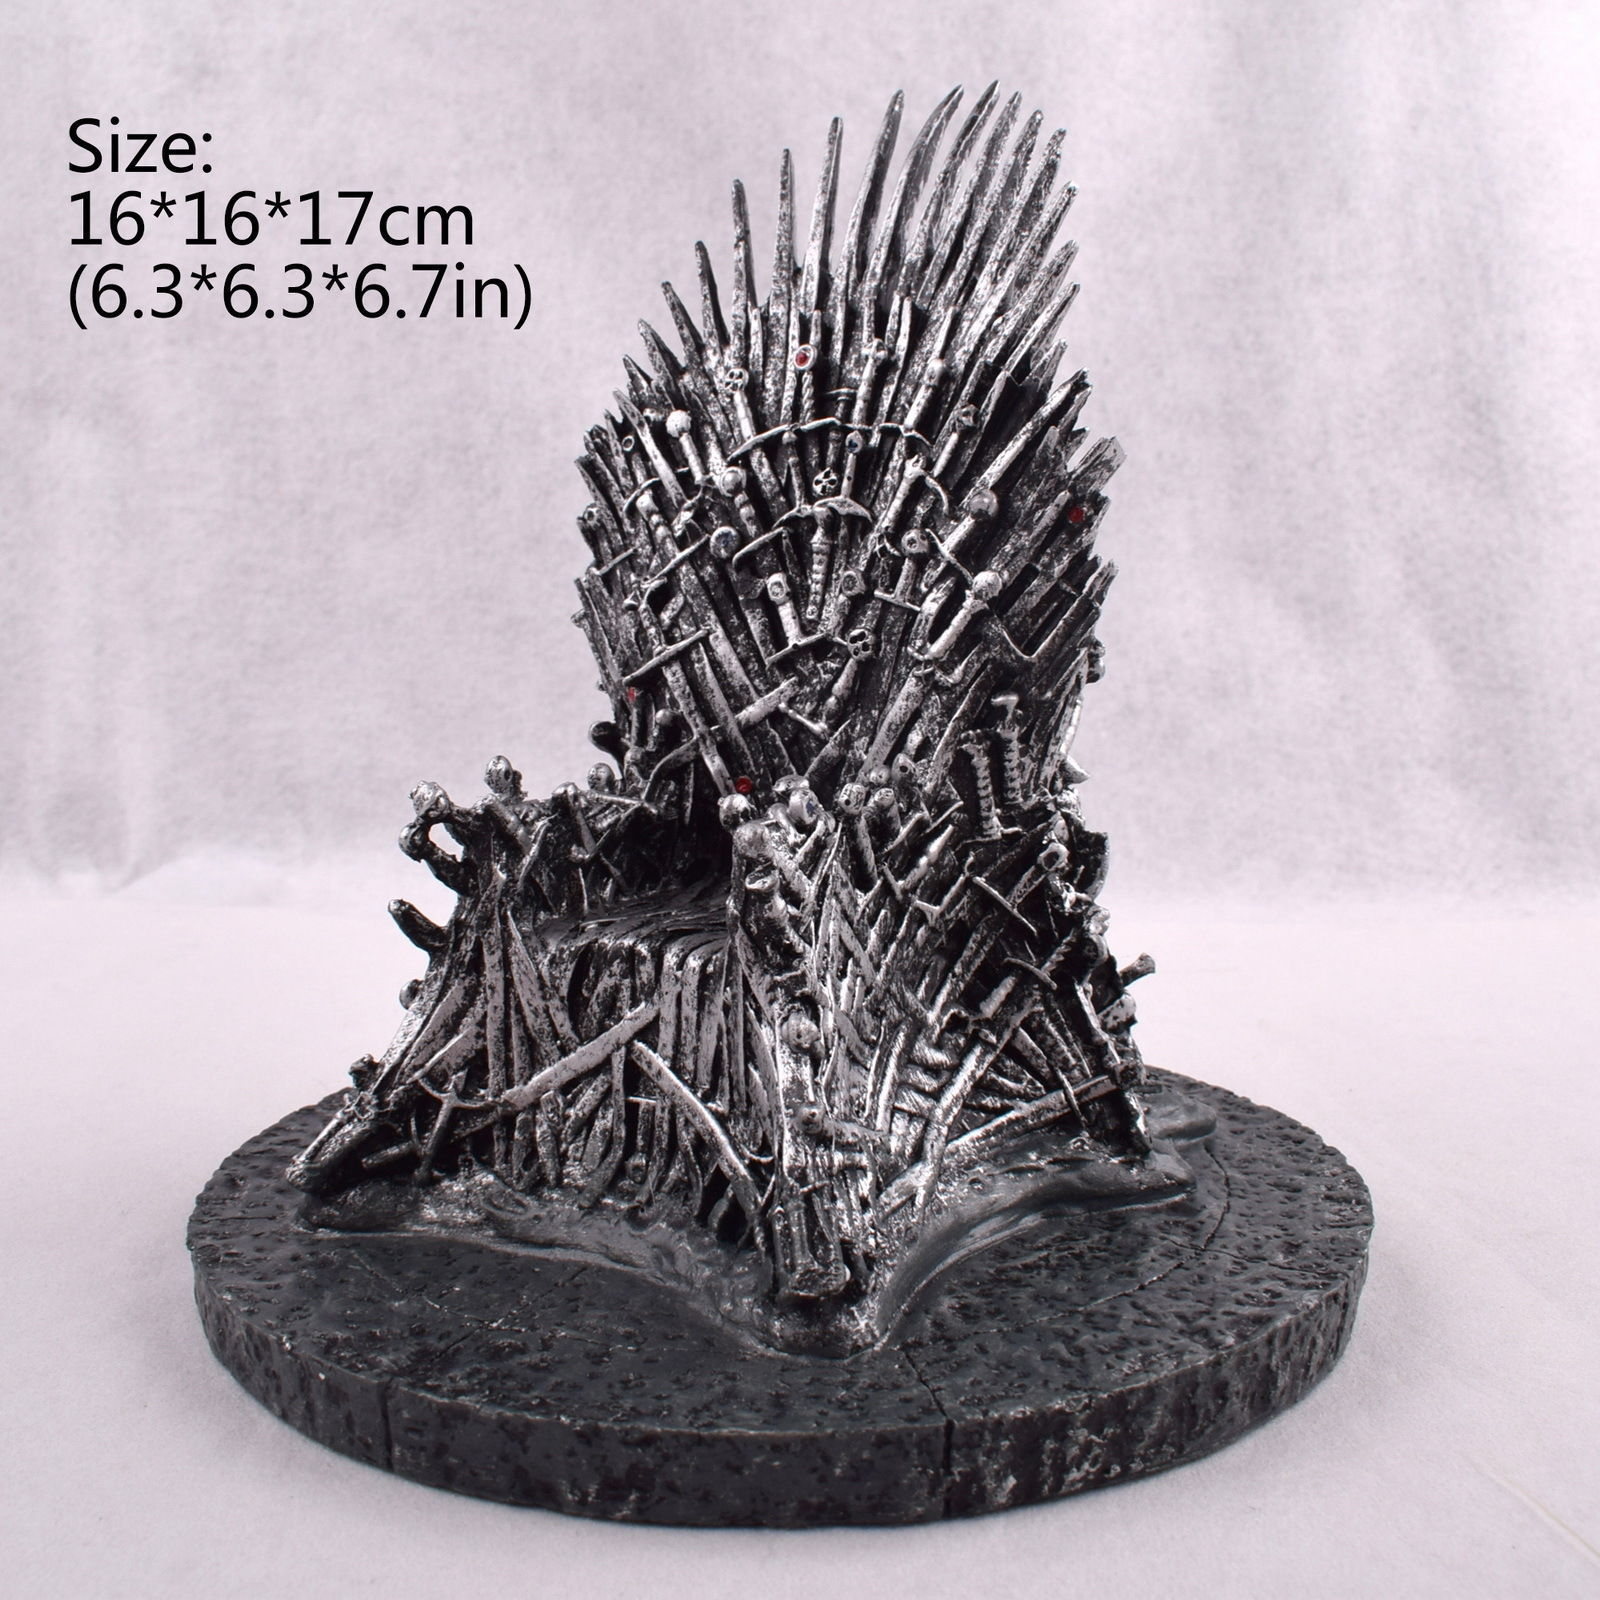 7(17cm) The Iron Throne Game Of Thrones A Song Of Ice And Fire Replica Statue Anime Figure Collectible Model Toy game of thrones a song of ice and fire 1 1 resin shield bar decoration cosplay props action figure collectible model toy w290